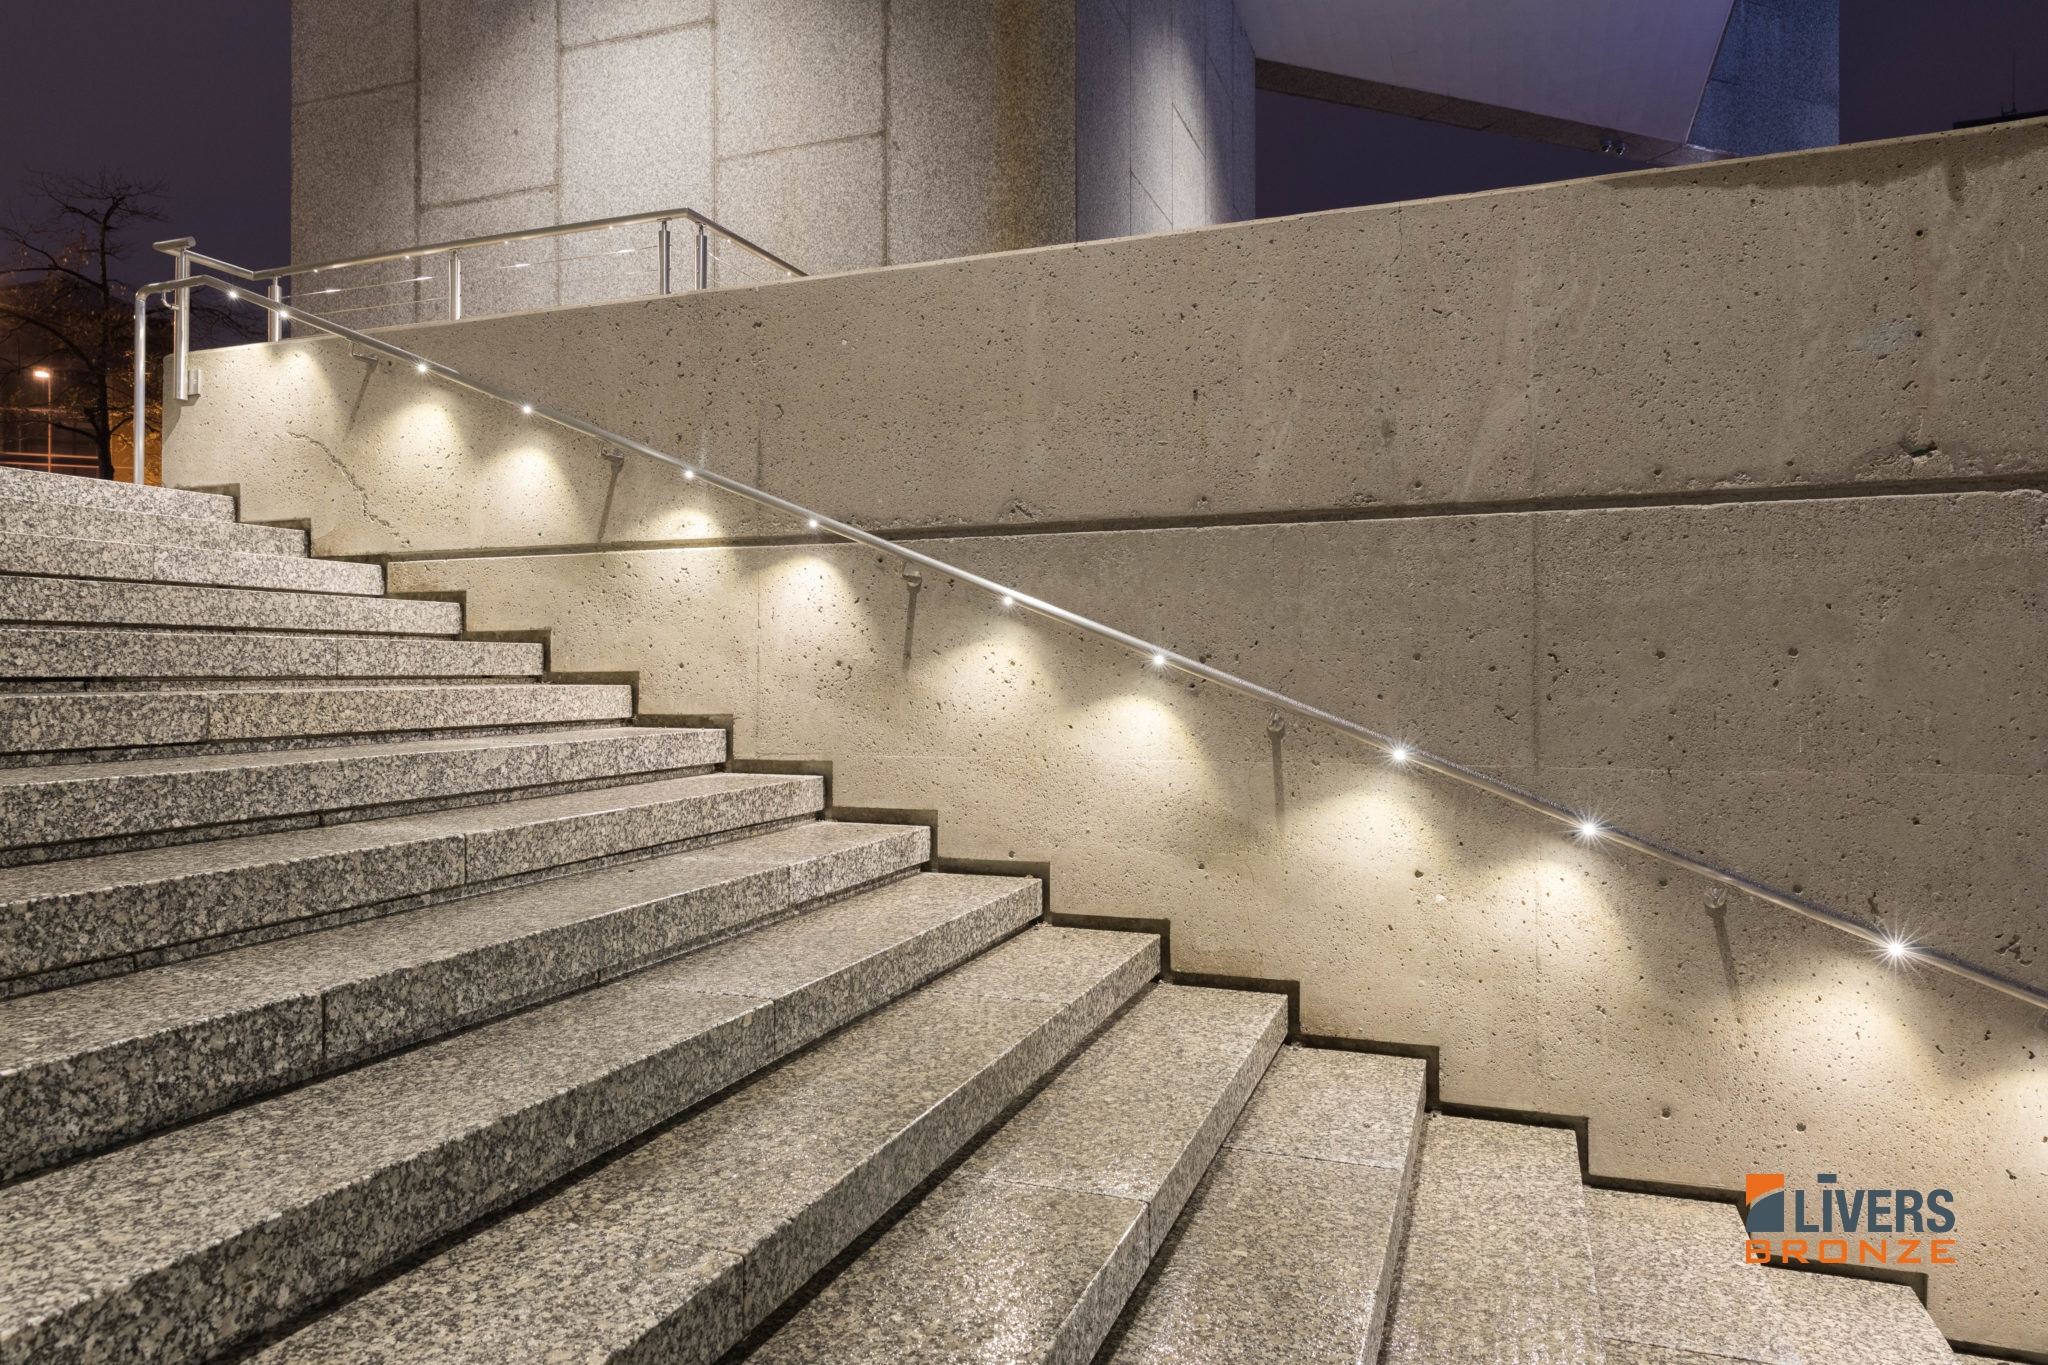 Led Handrail Materials Livers Bronze Railing Systems   Lighted Handrails For Stairs   Wood Hand Rail Design   Antique   Brushed Nickel   Modern   Acrylic